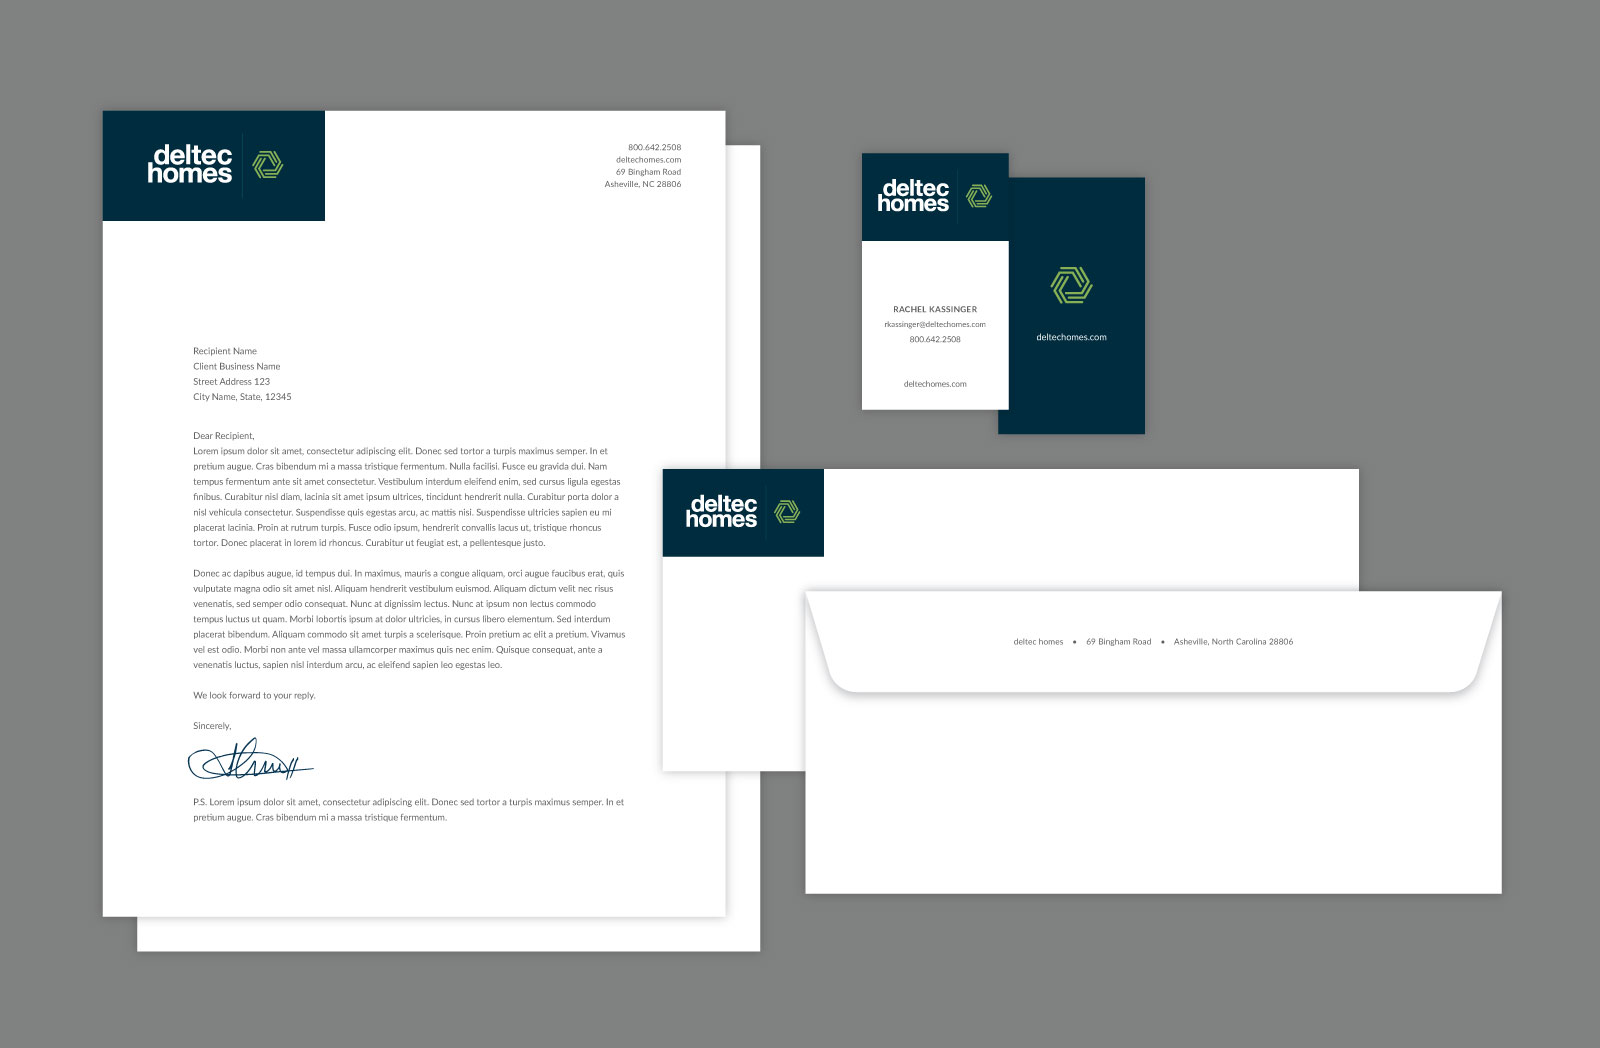 Deltec Homes stationery arranged against gray background. Includes Letterhead, business card, and envelope.